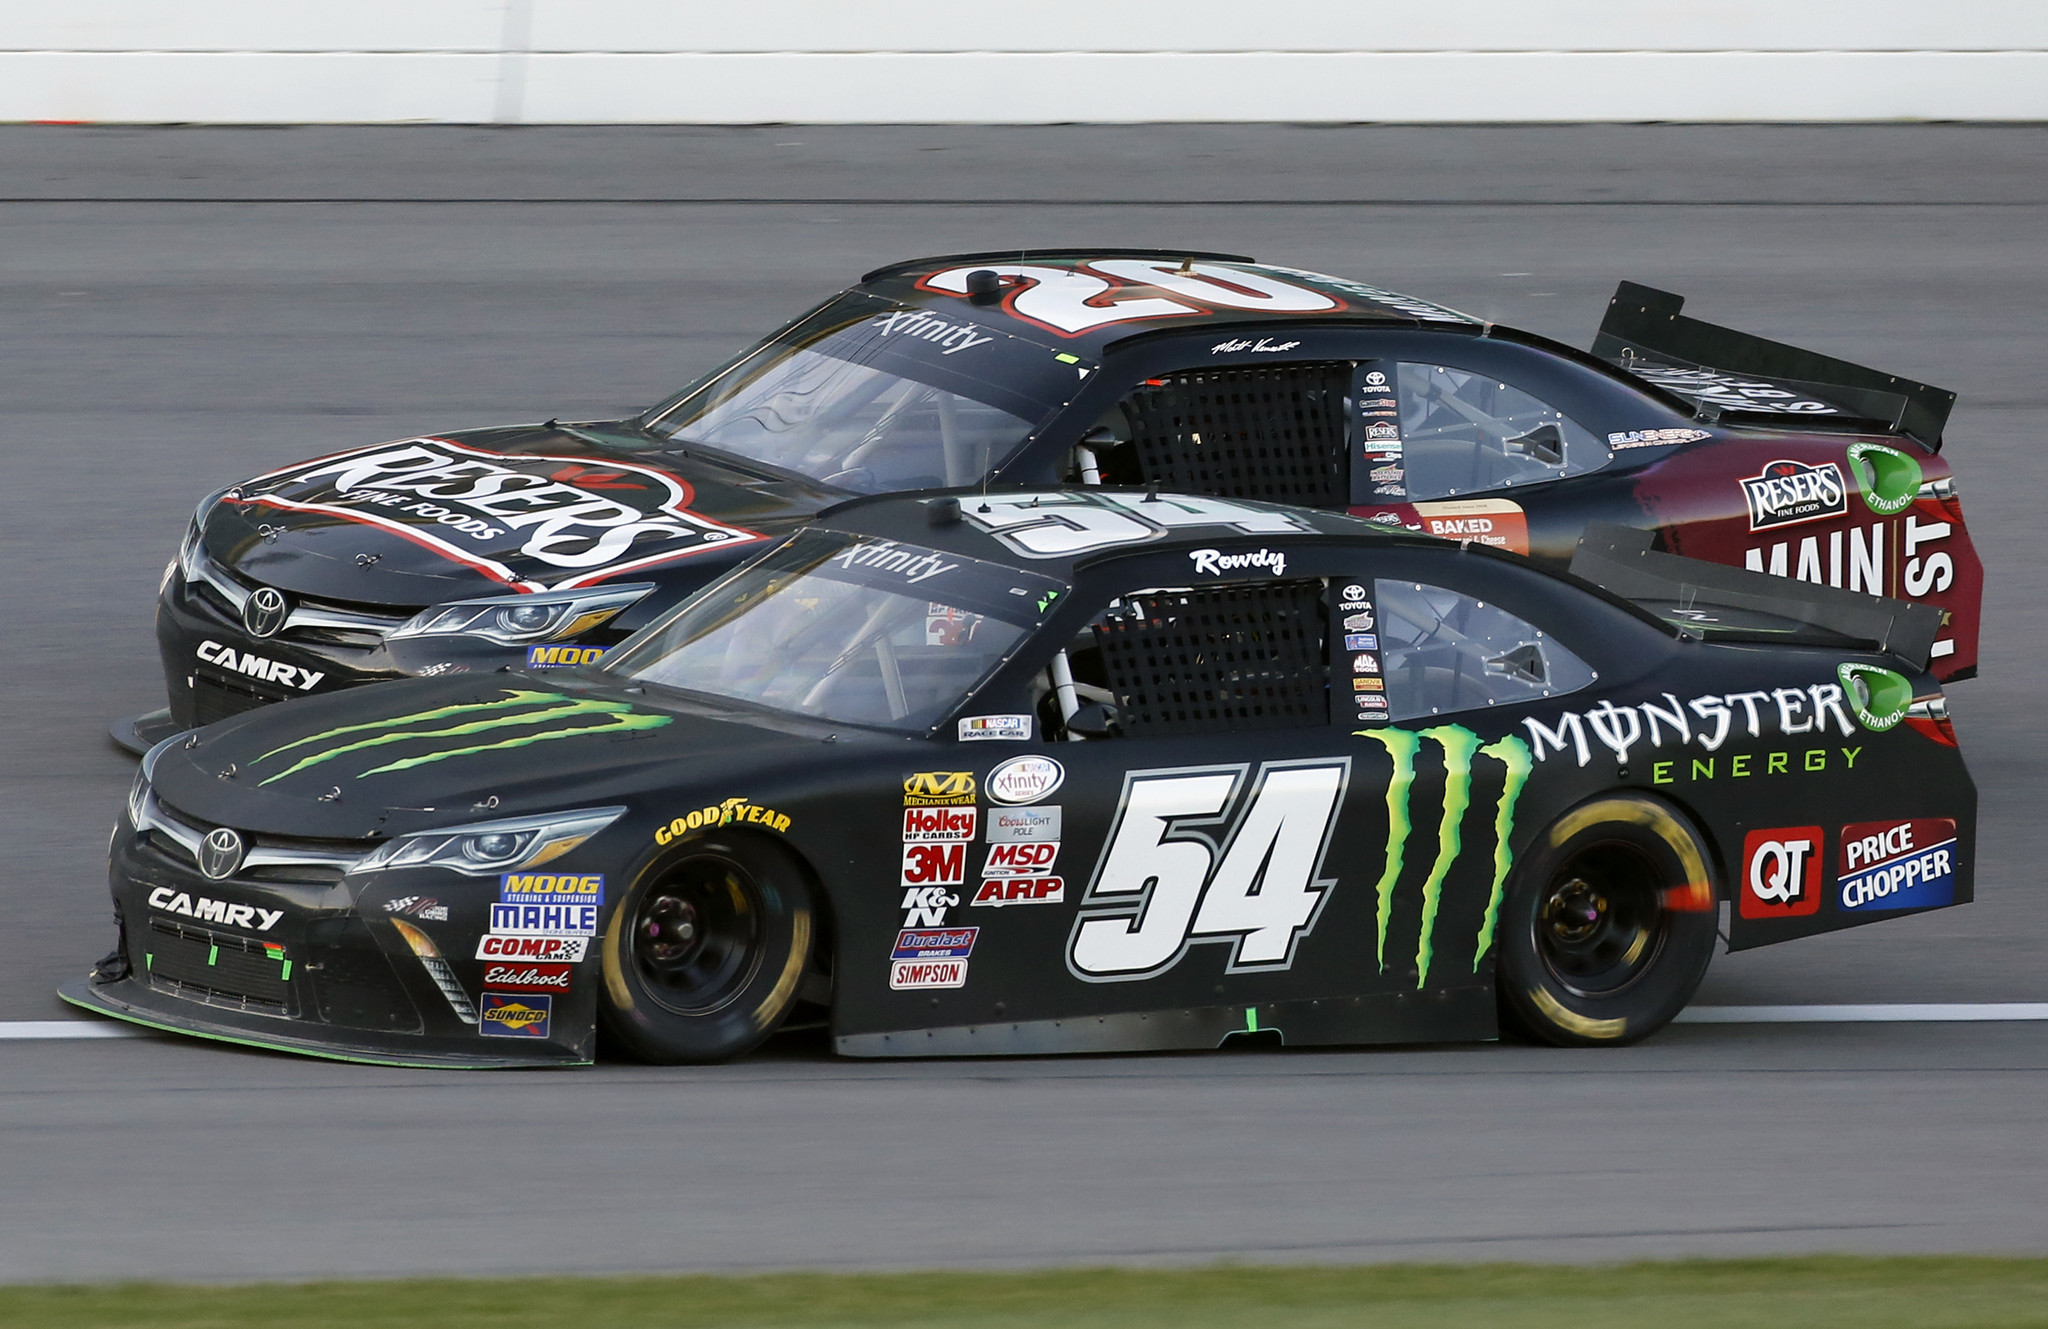 Kyle Busch Wins Xfinity Race At Kansas Speedway The Morning Call